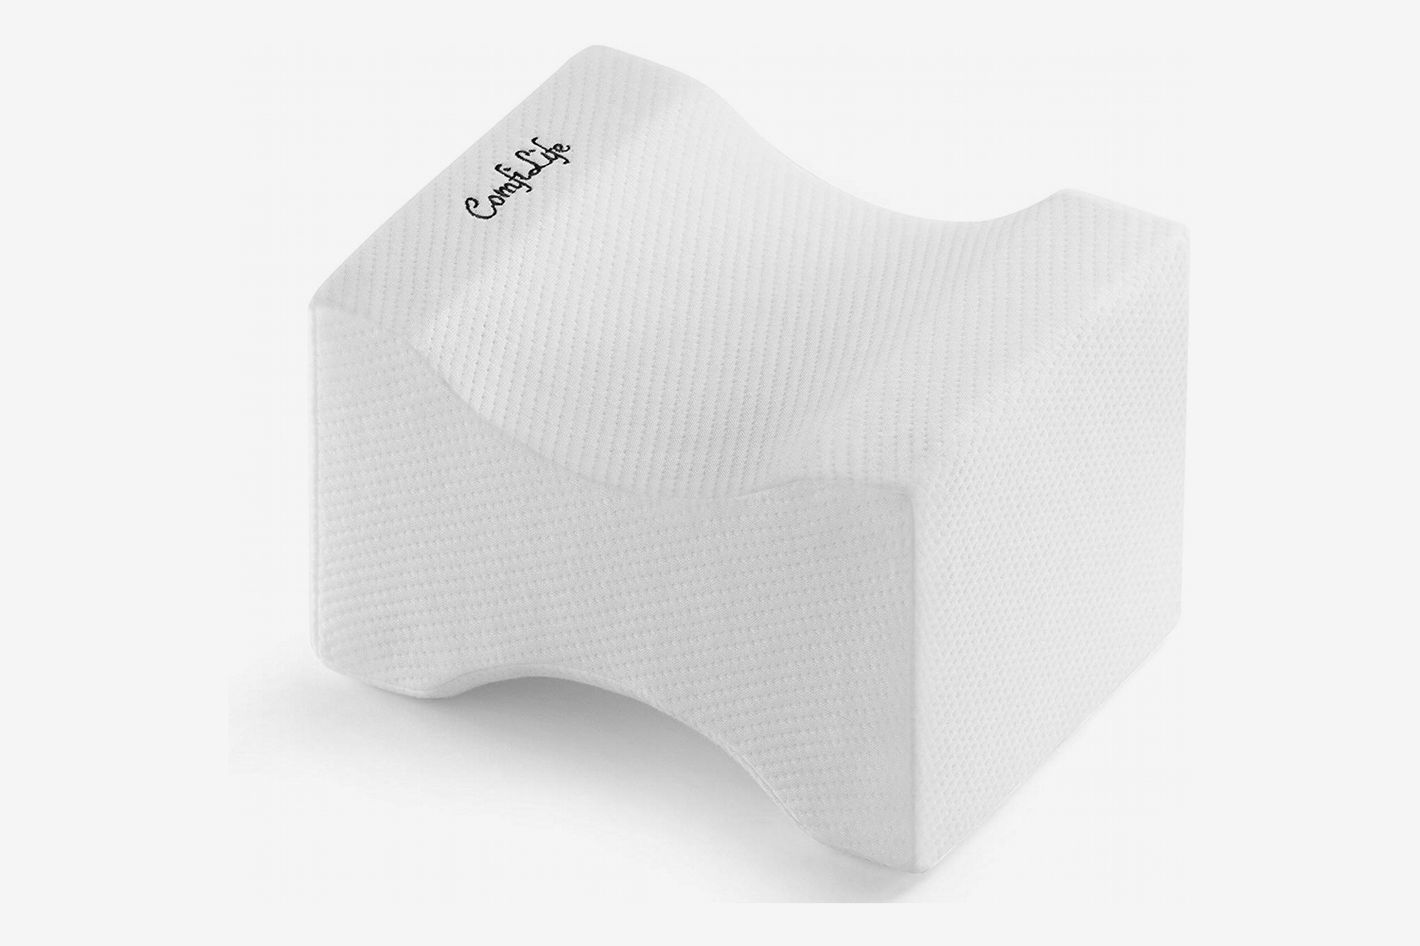 ComfiLife Orthopedic Knee Pillow for Sciatica Relief